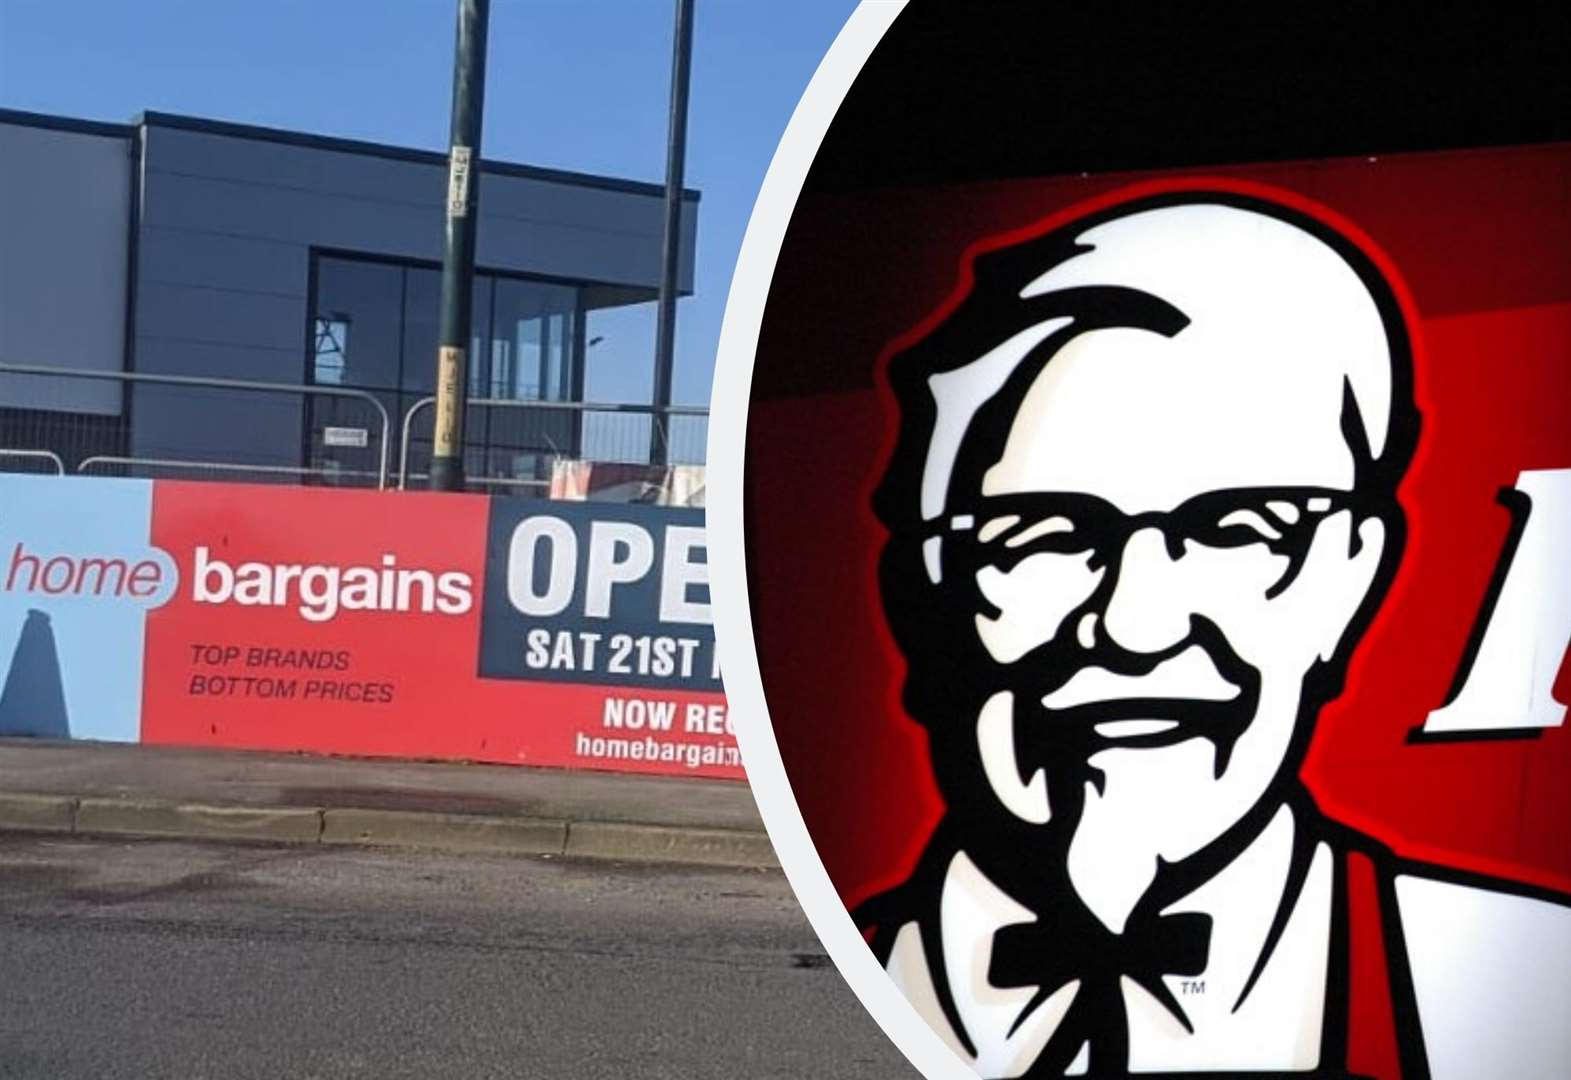 Bargain store and KFC to open in same month